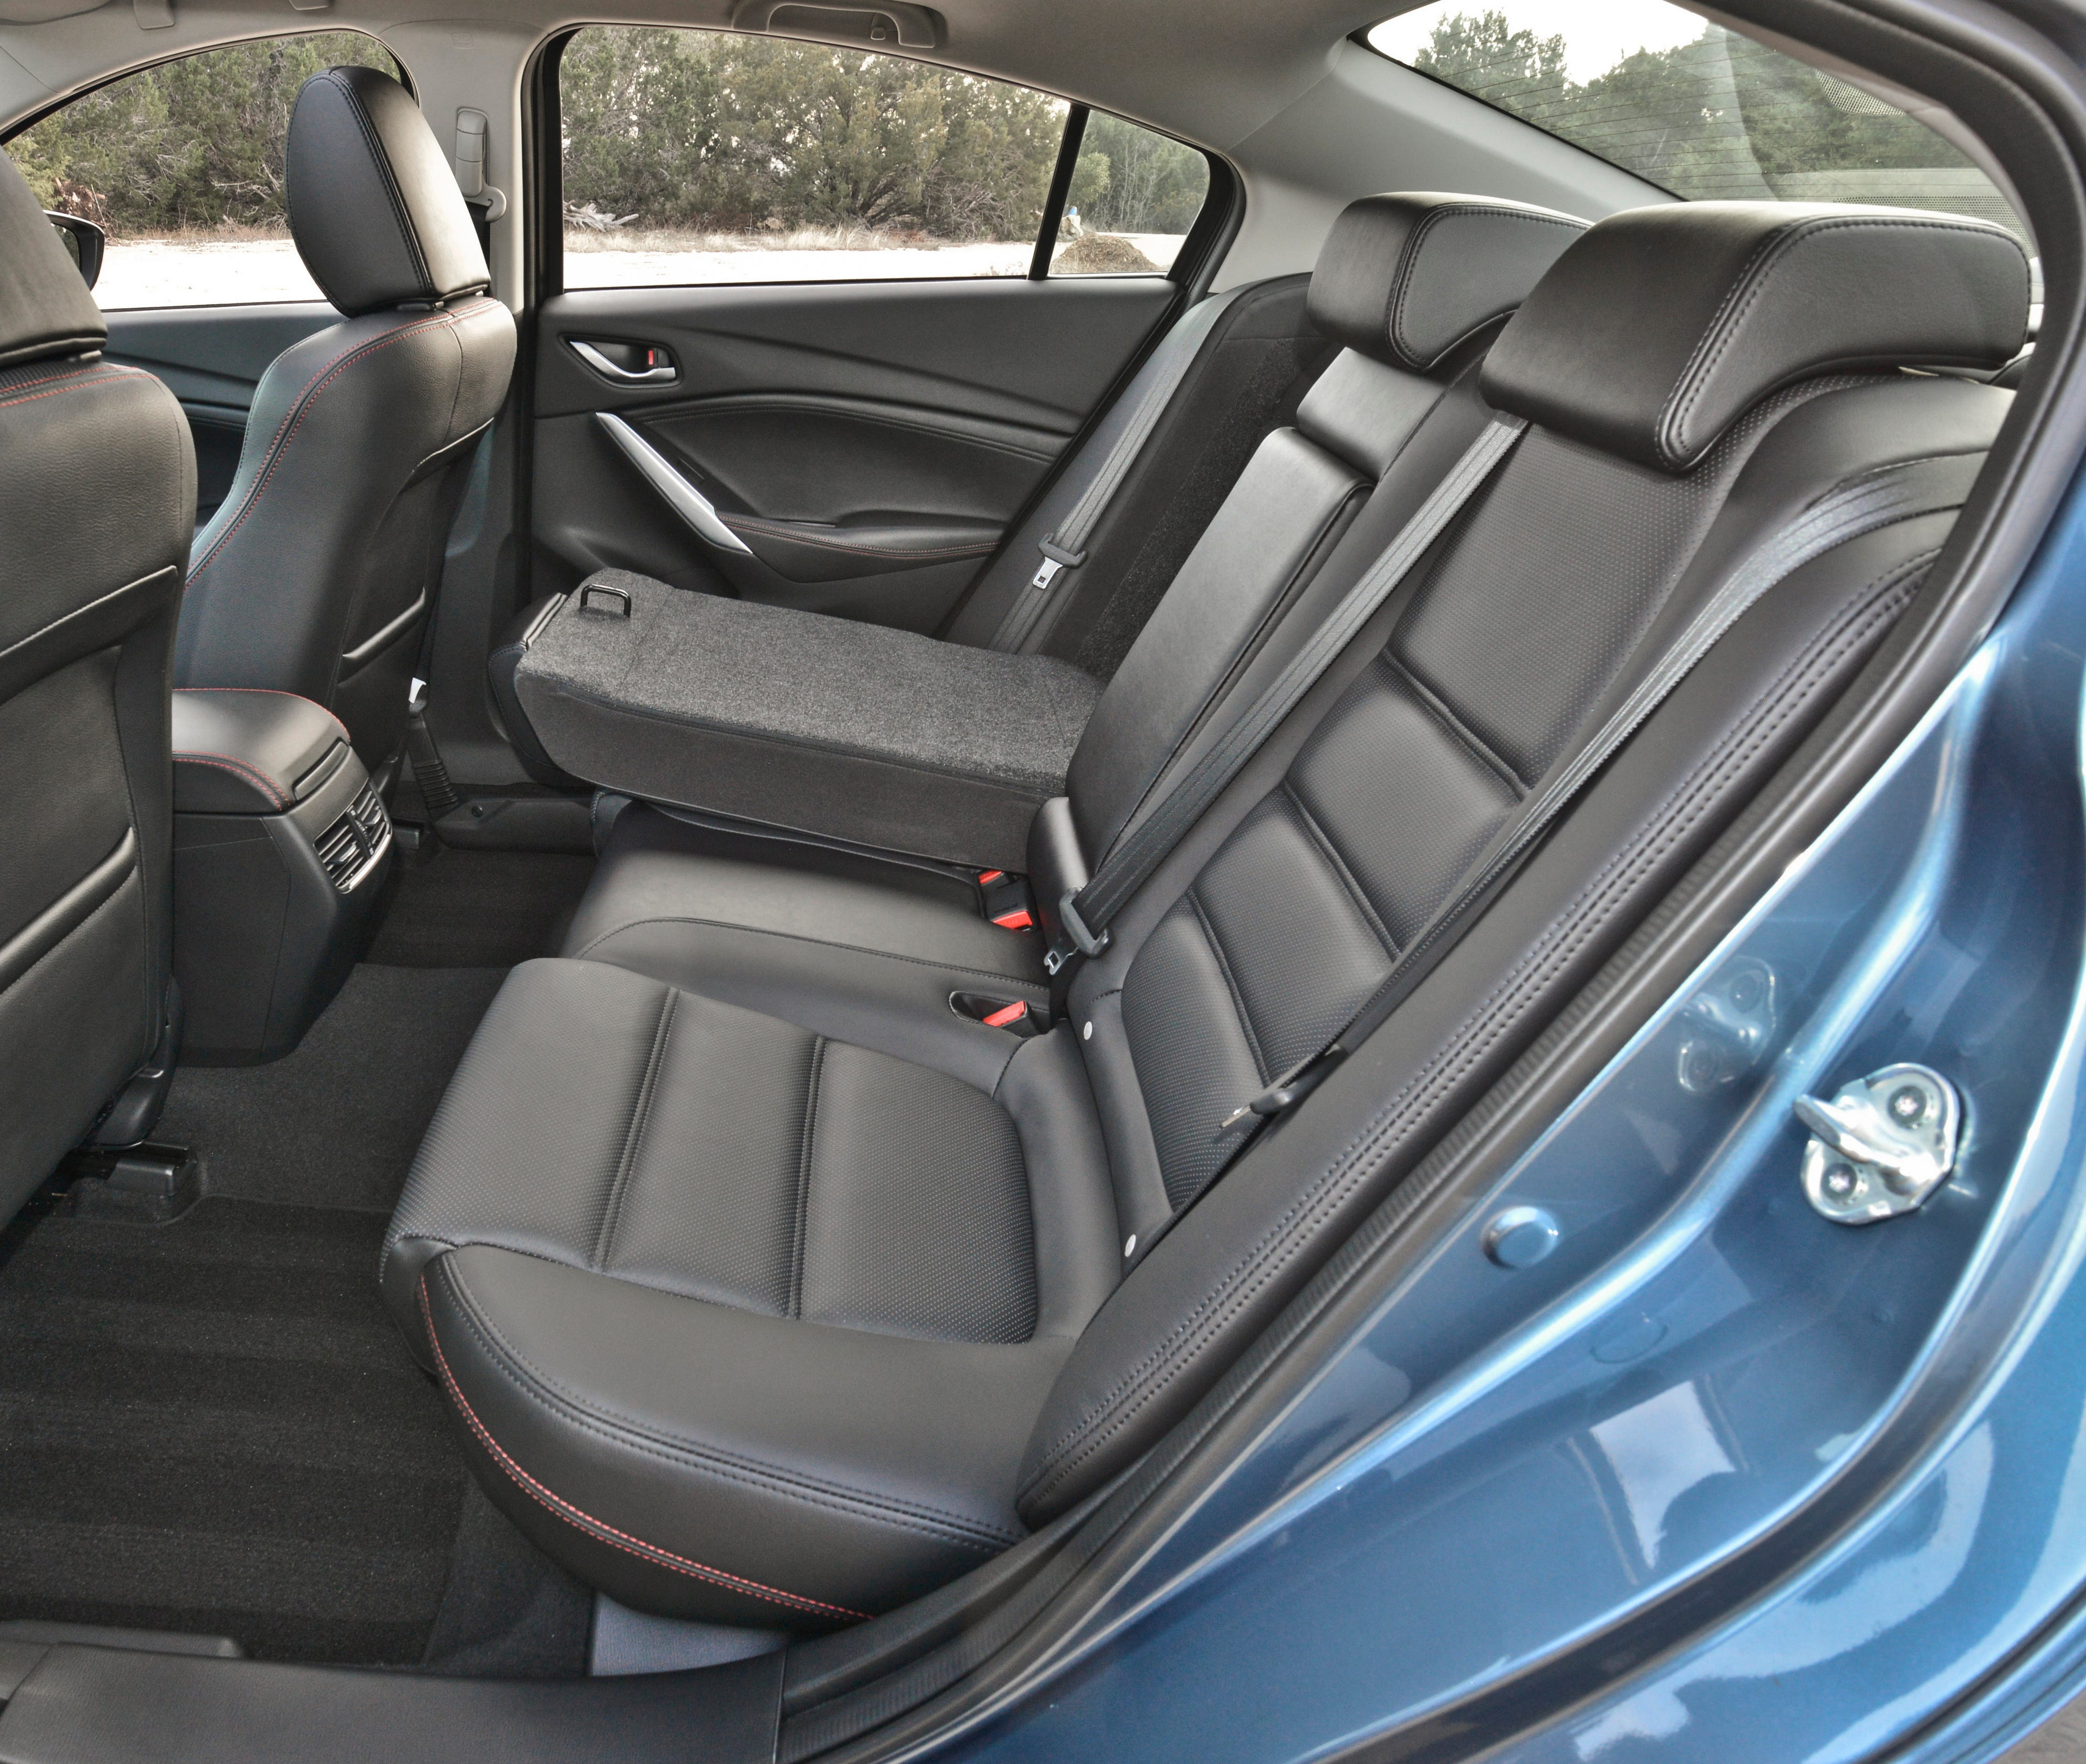 The 2014 Mazda 6's stylish made entry into the rear seat a little tight, but there is plenty of room once you get there.